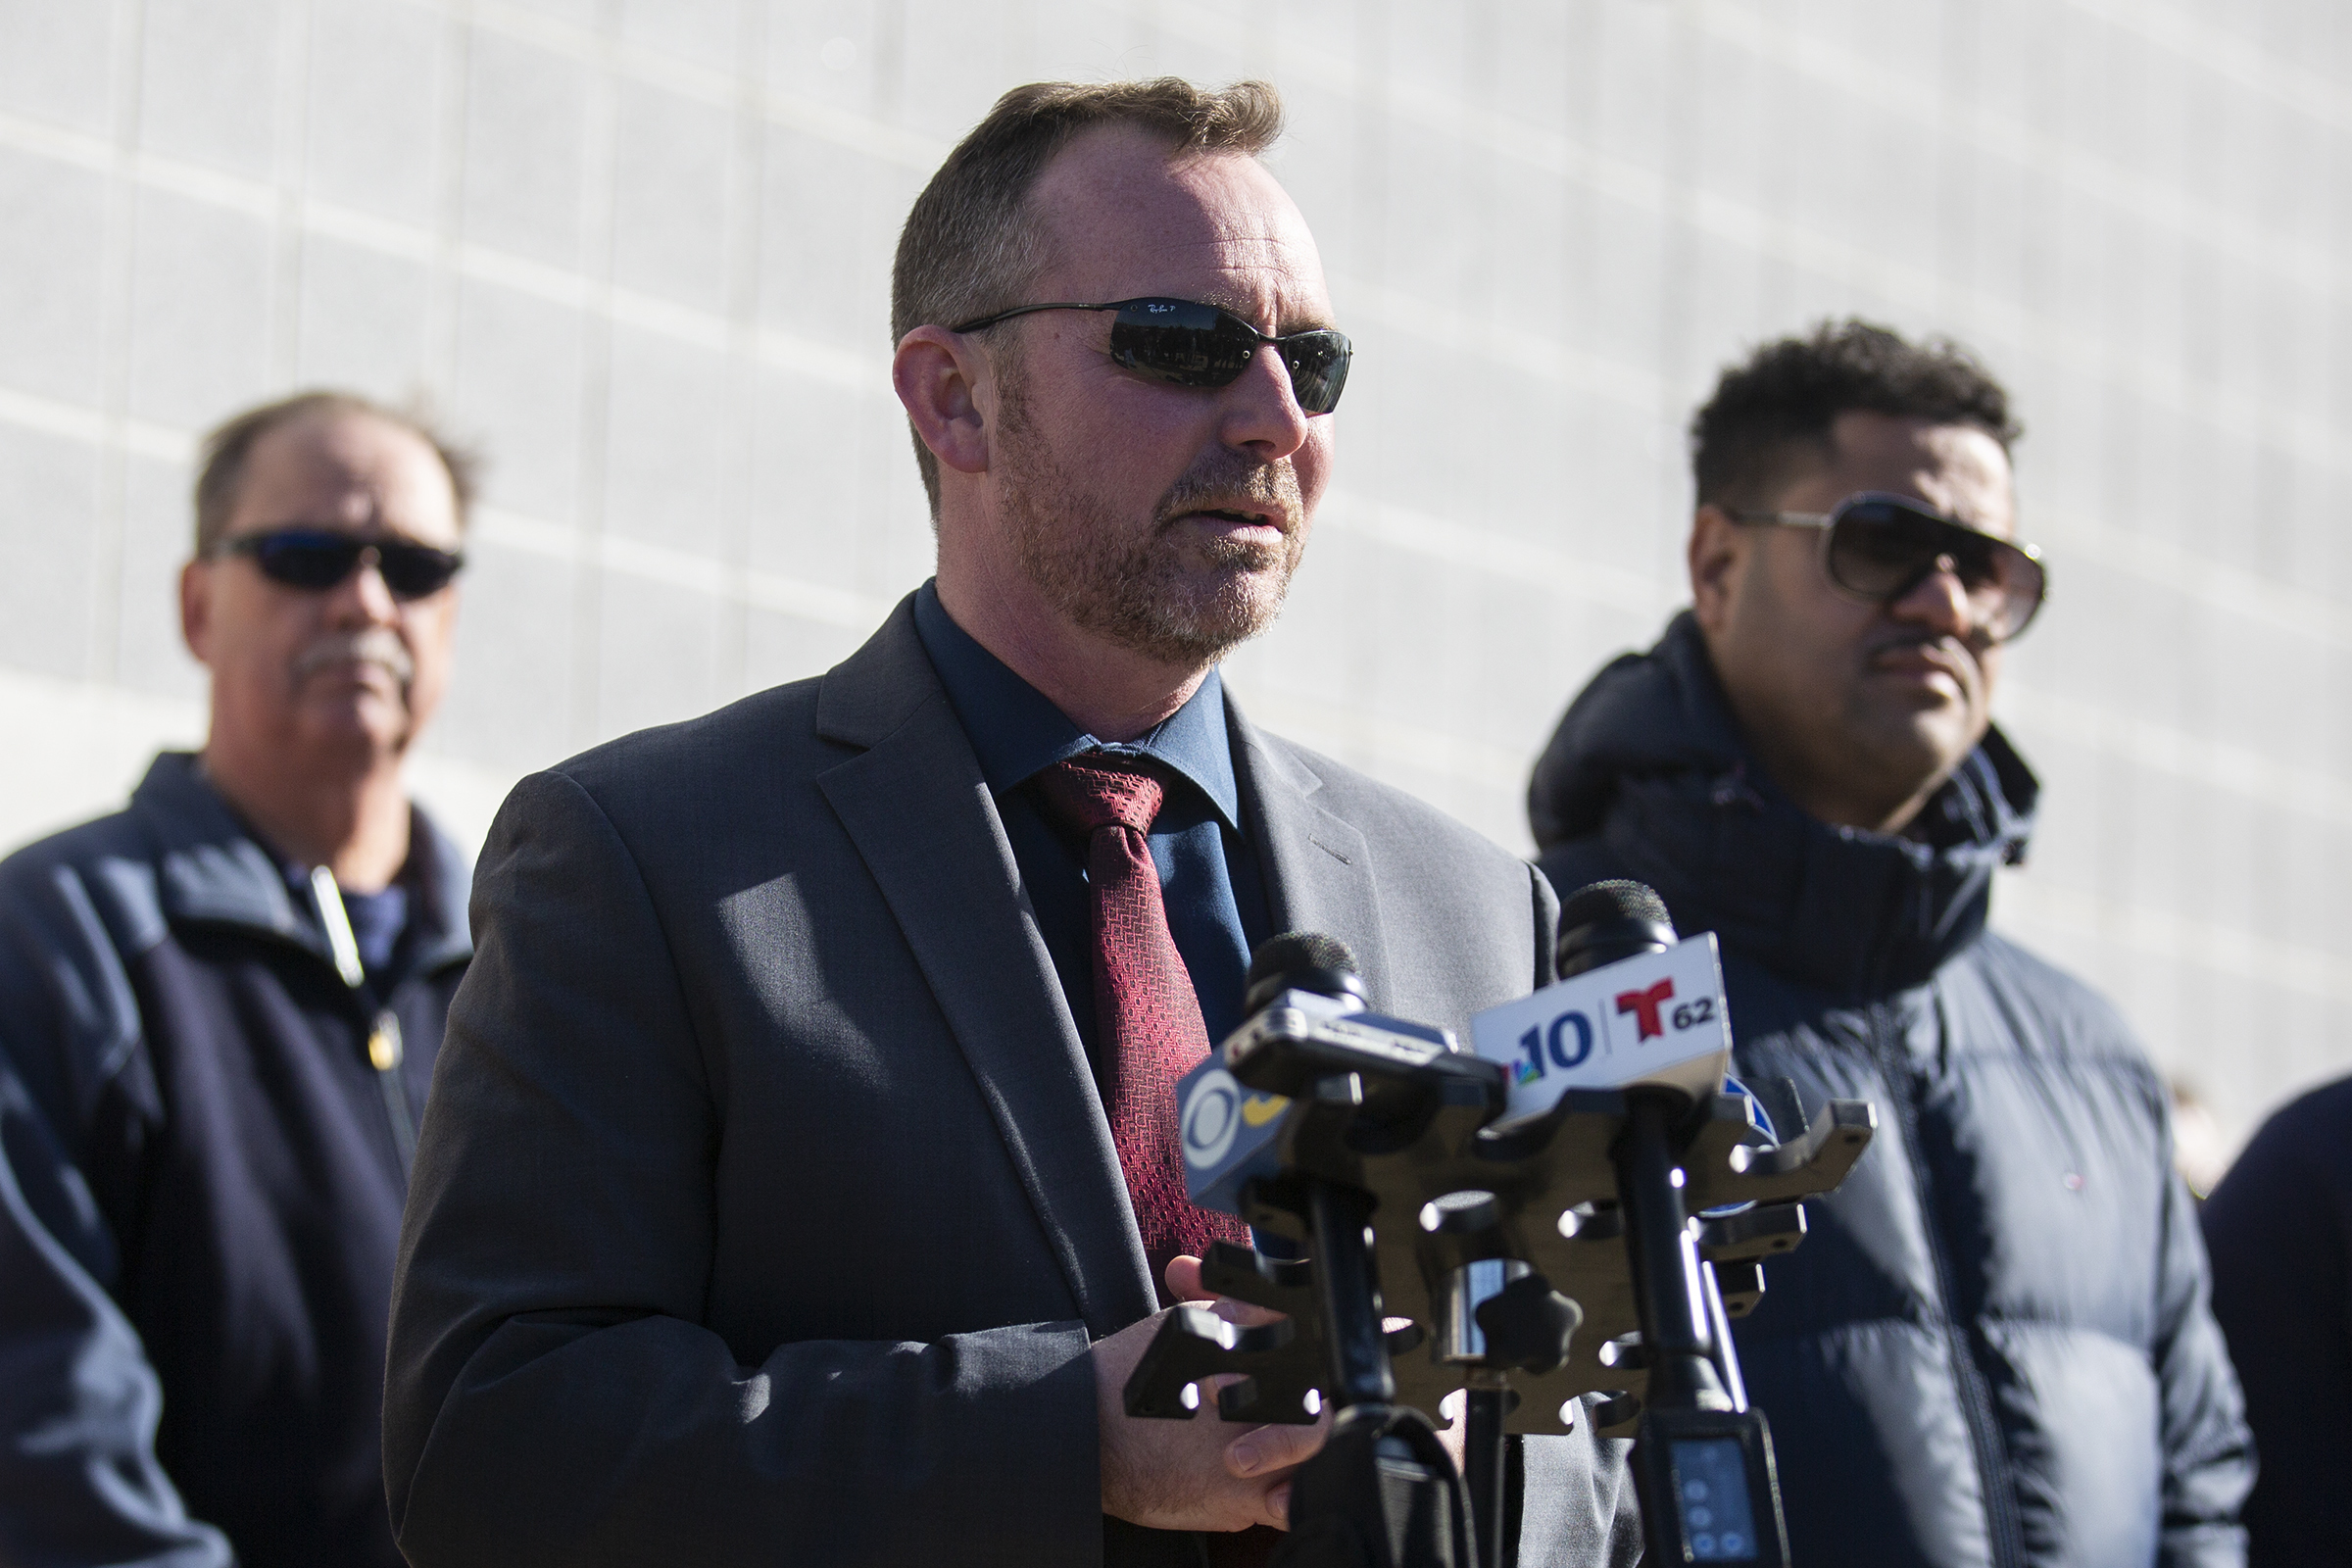 Sean Riggin, chief of Police in Pleasantville, N.J., speaks with media Saturday, Nov. 16, 2019 at Pleasantville High School regarding the shooting at a football game between Camden High School and Pleasantville on Friday, November 15 in Pleasantville, NJ.  (Tyger Williams/The Philadelphia Inquirer via AP )